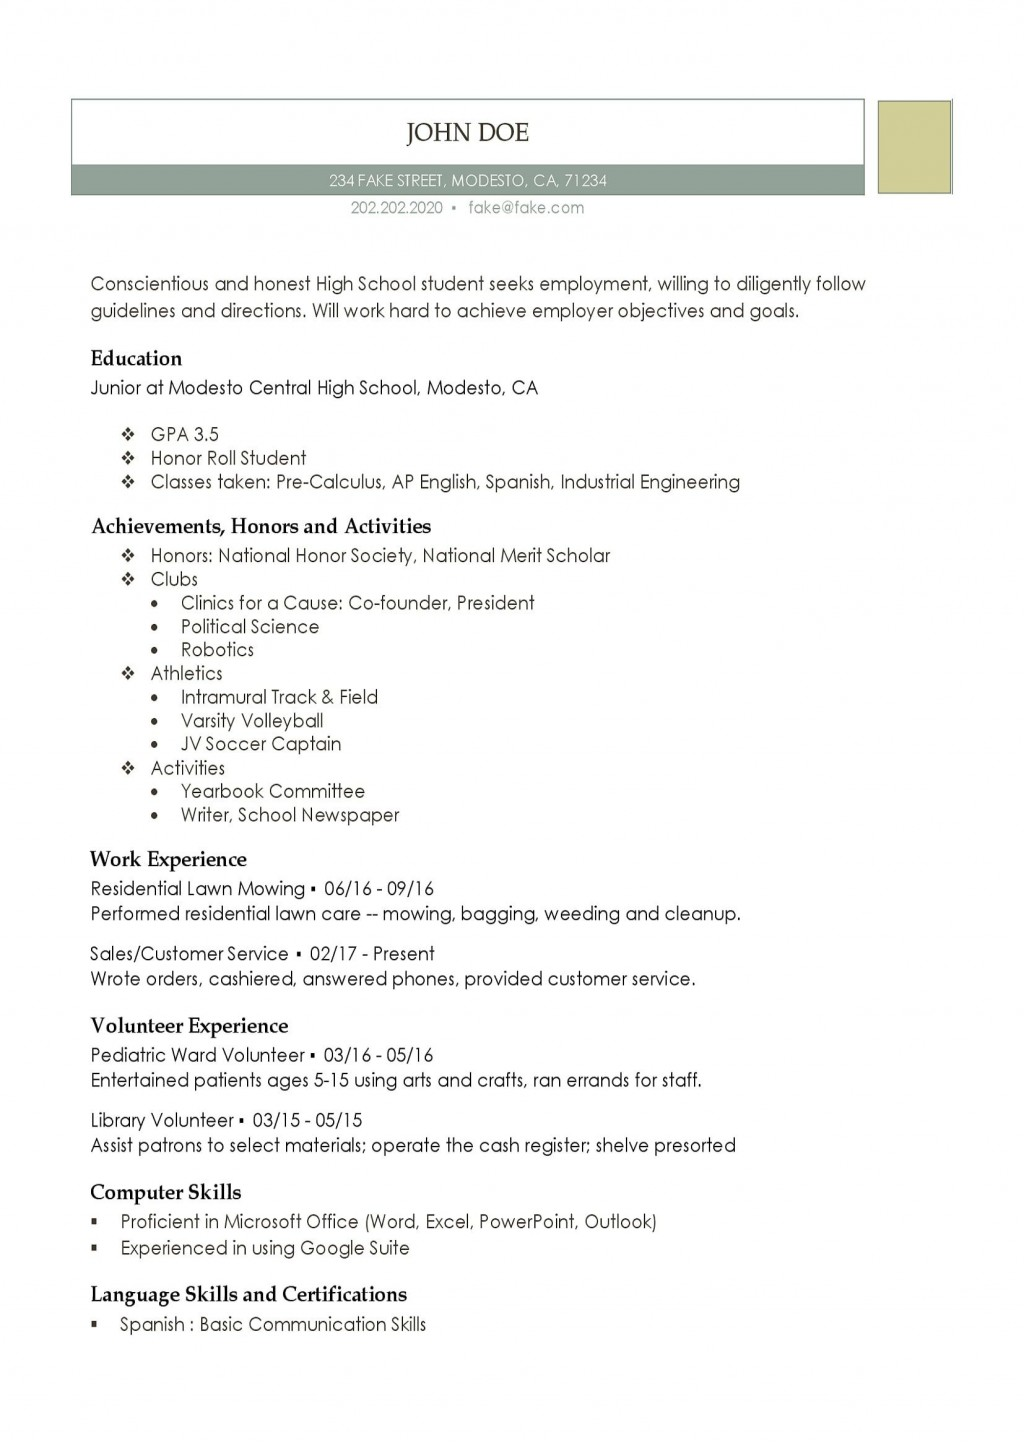 003 Unusual Basic Student Resume Template Picture  Simple Word High School Australia Google DocLarge